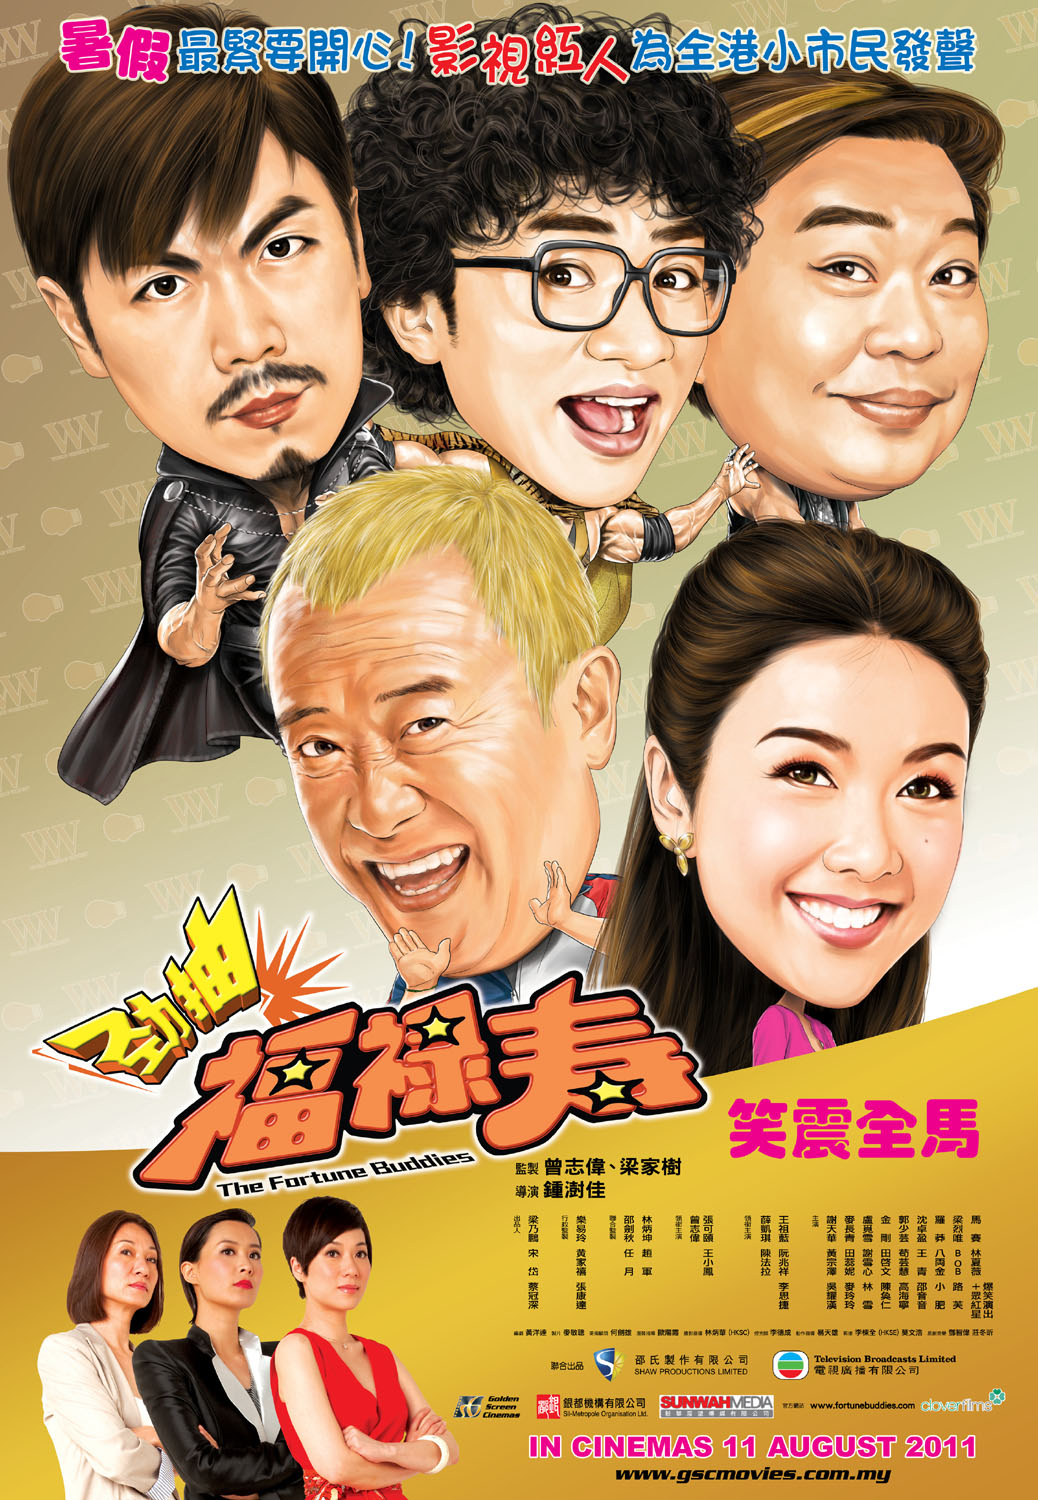 The Fortune Buddies movie